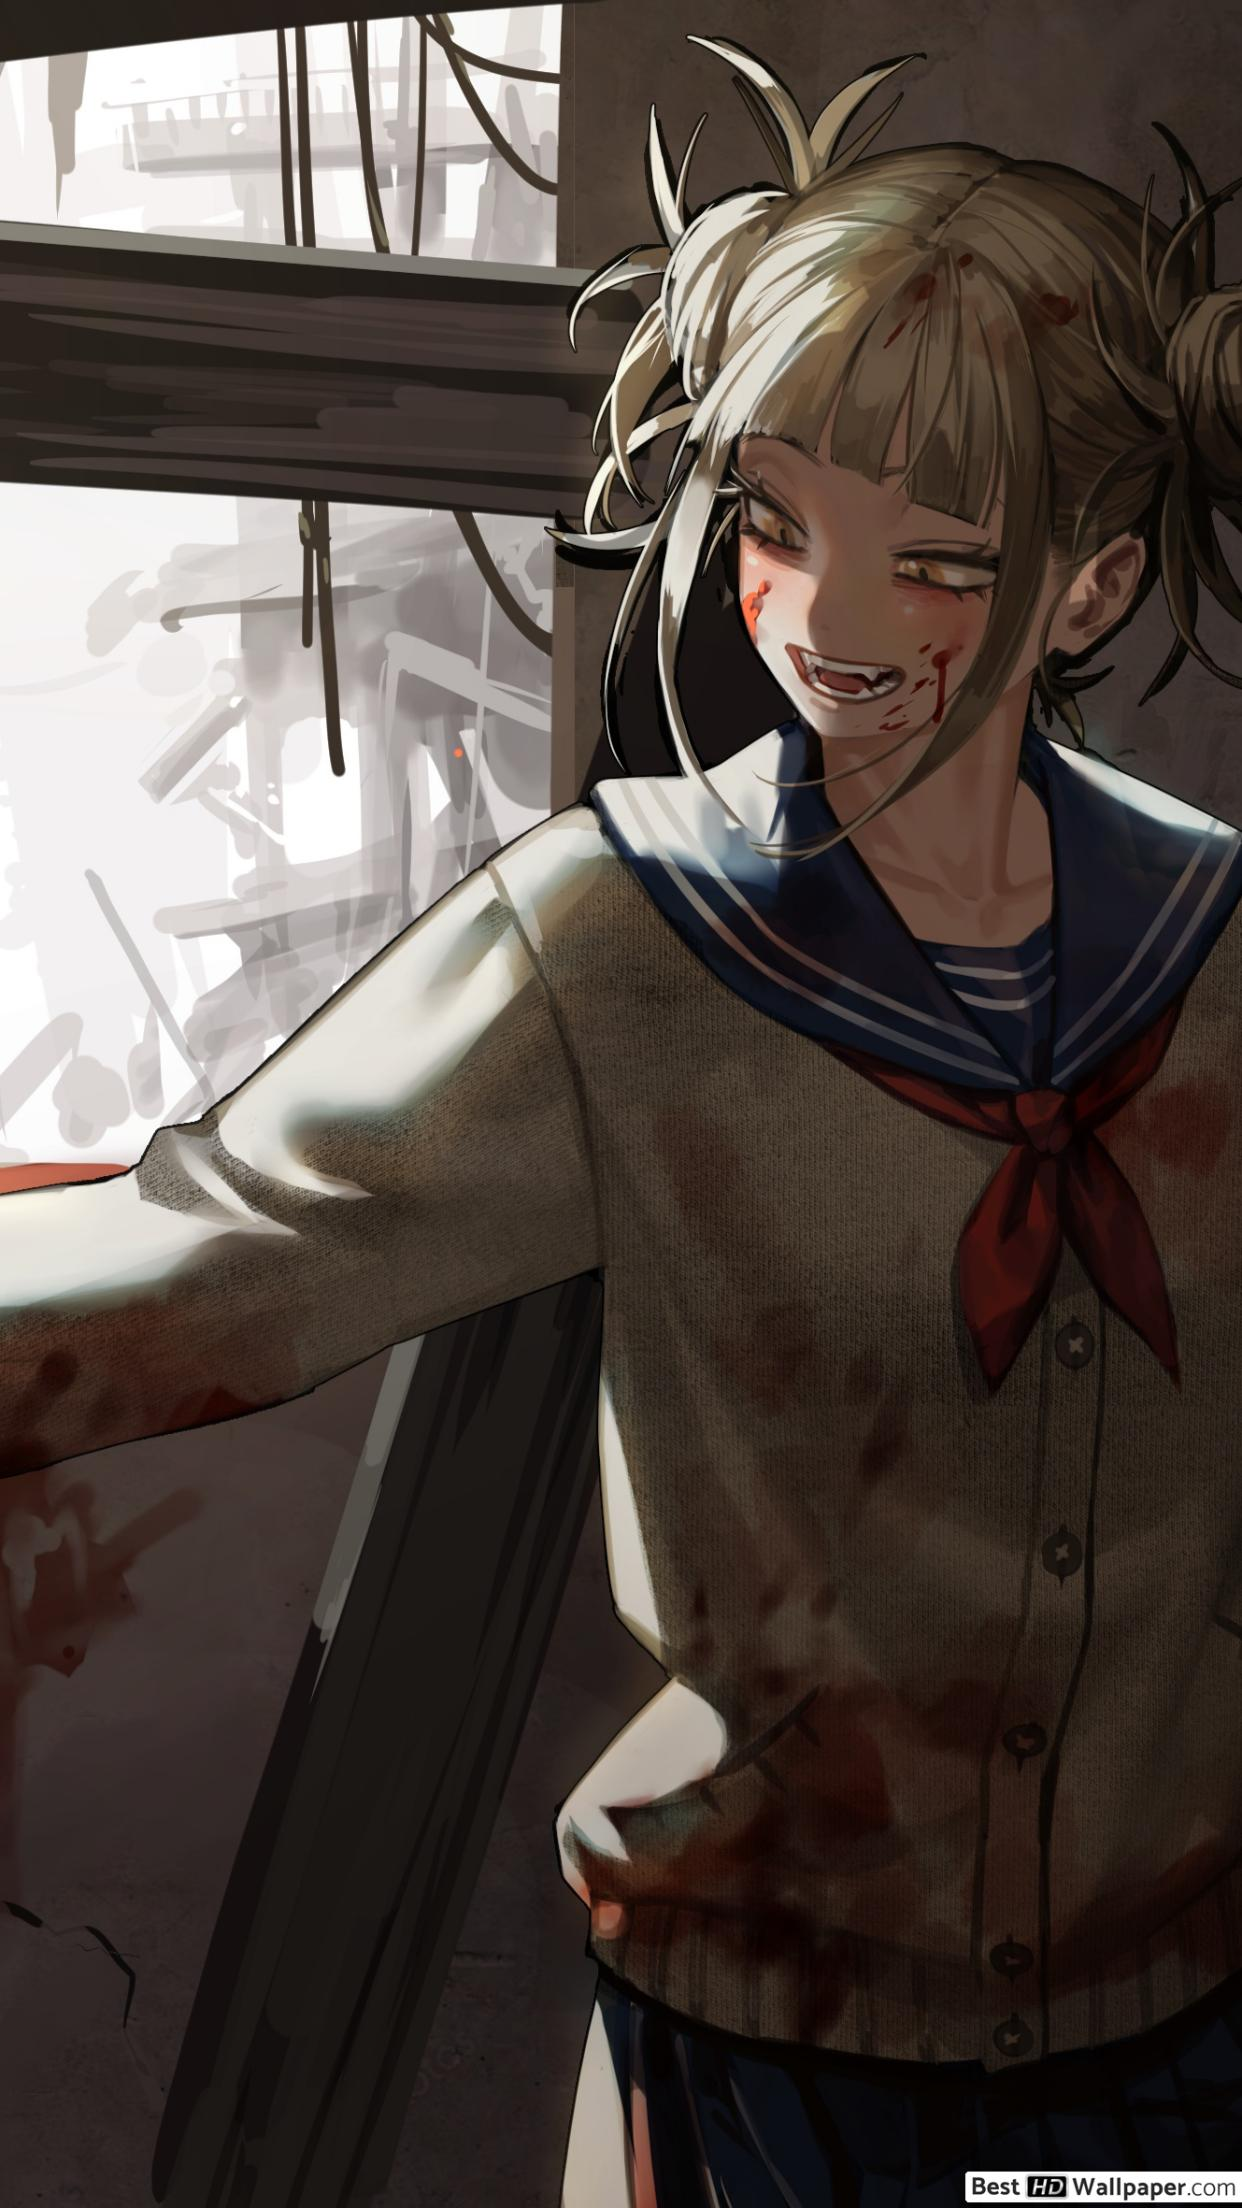 Himiko Toga Aesthetic Wallpapers - Wallpaper Cave